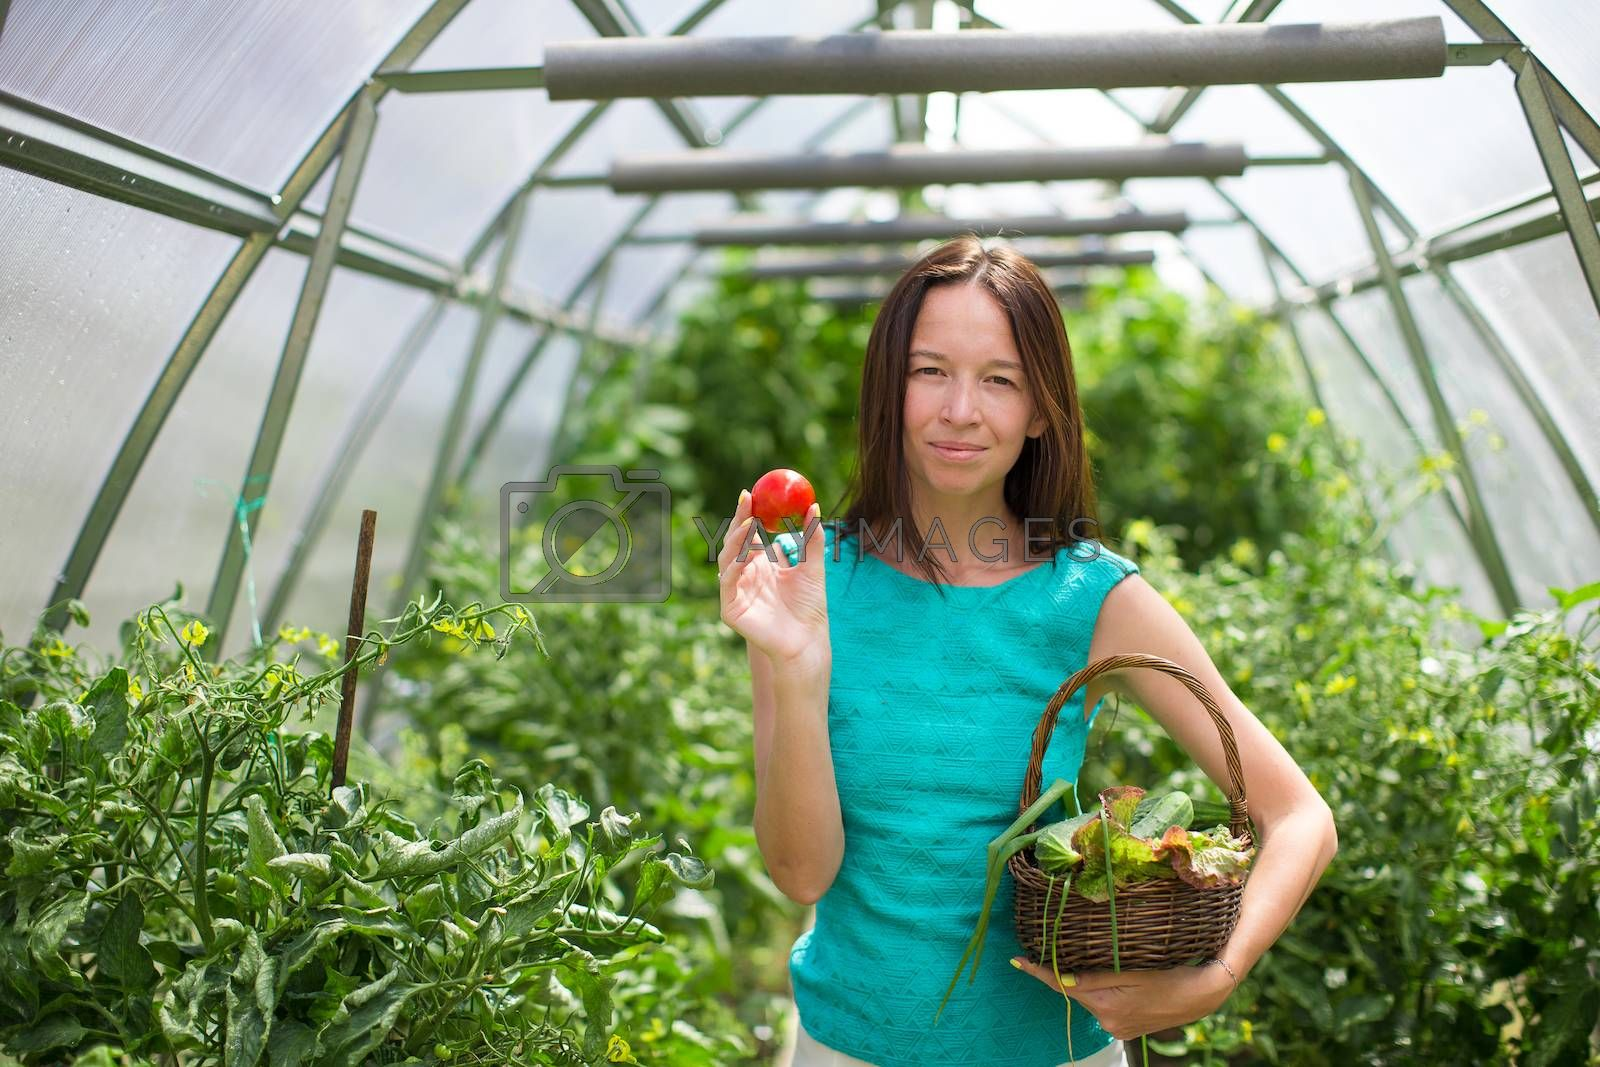 young woman holding a basket of greenery and  tomatos in greenhouse